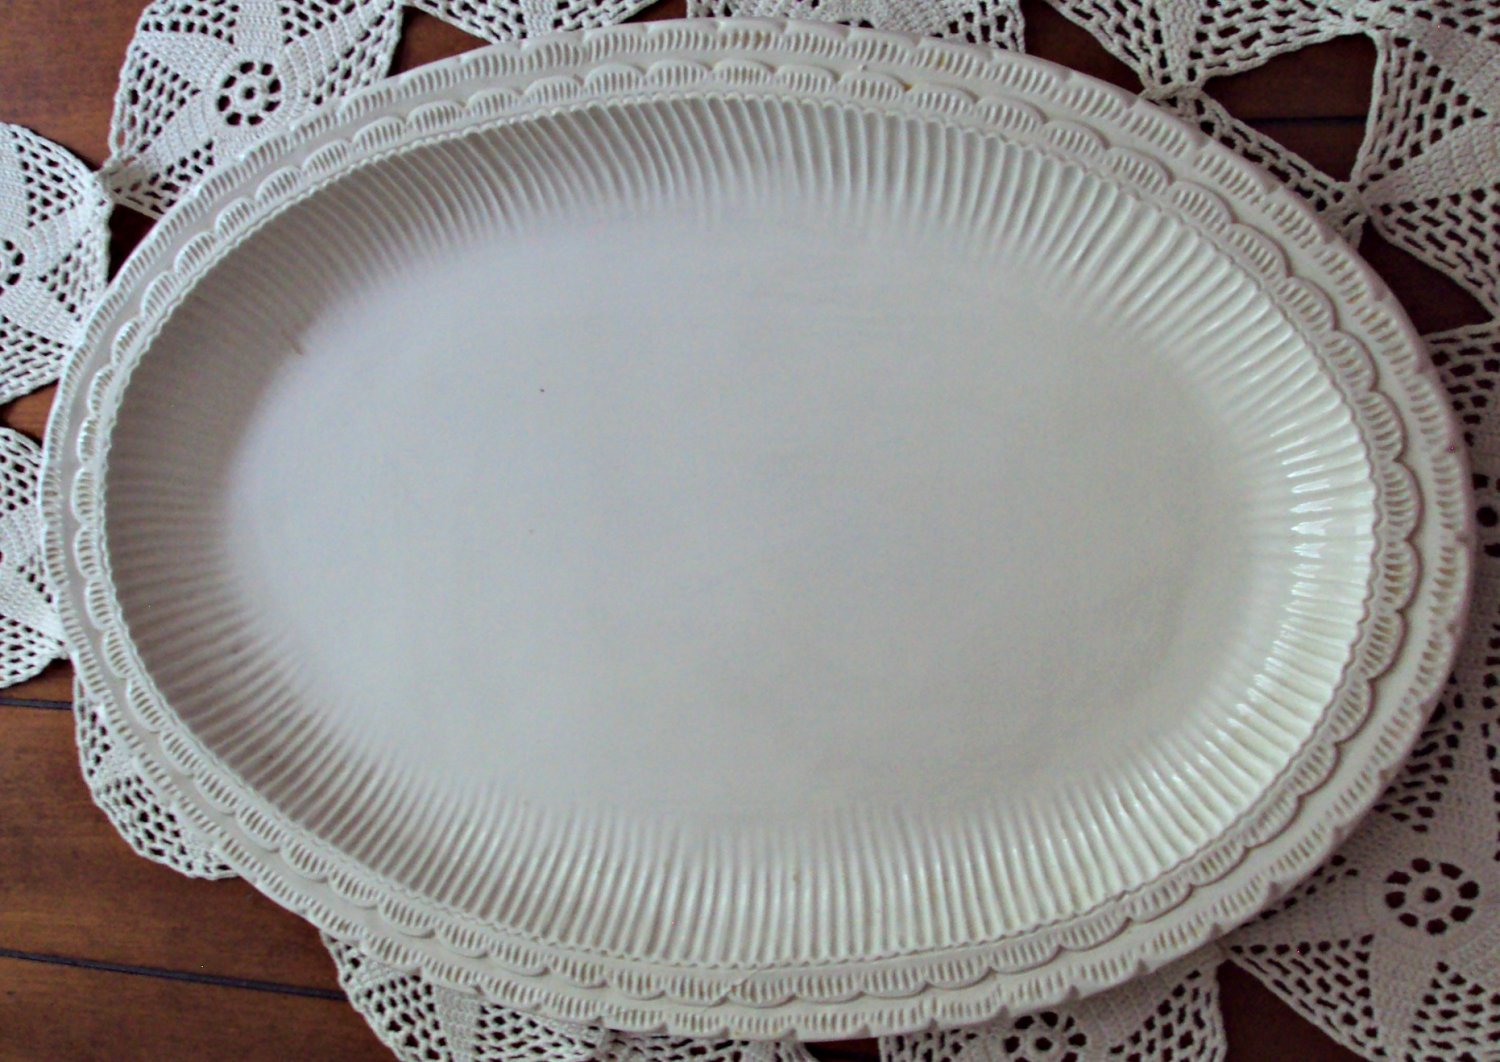 Vintage Large Oval White Ribbed Platter Made in Italy